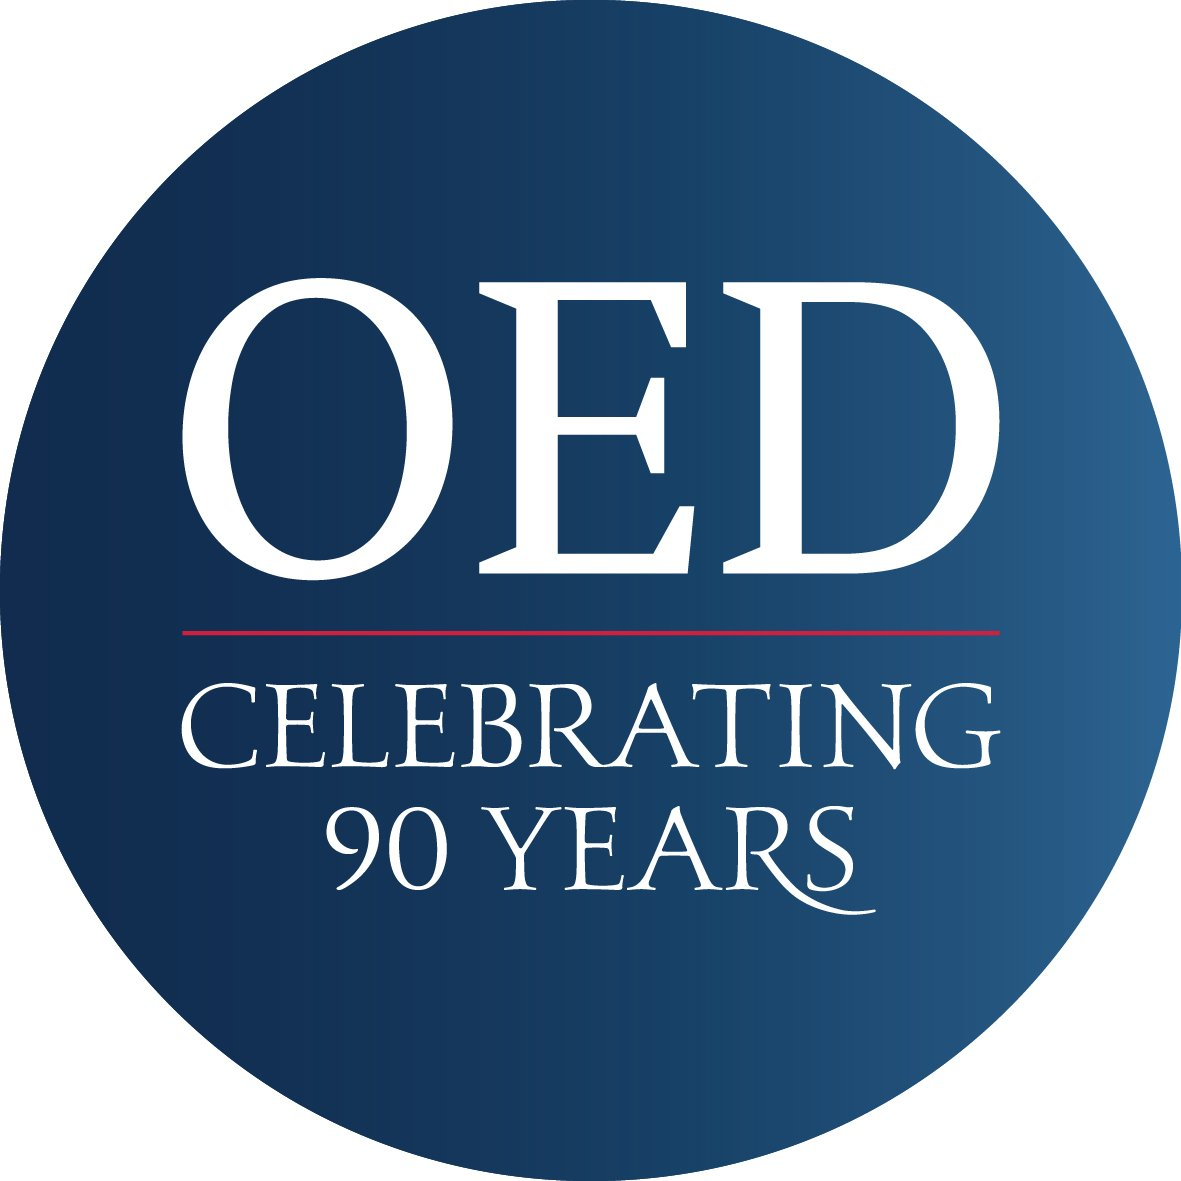 test Twitter Media - This year marks the 90th birthday of the OED; that is, 90 years since the completion of the first edition of the dictionary. Celebrate with us and learn more about the past, present, and future of one of the largest dictionaries in the world! #OED90  https://t.co/Ge4fglaWDP https://t.co/vUwfLNSjQC